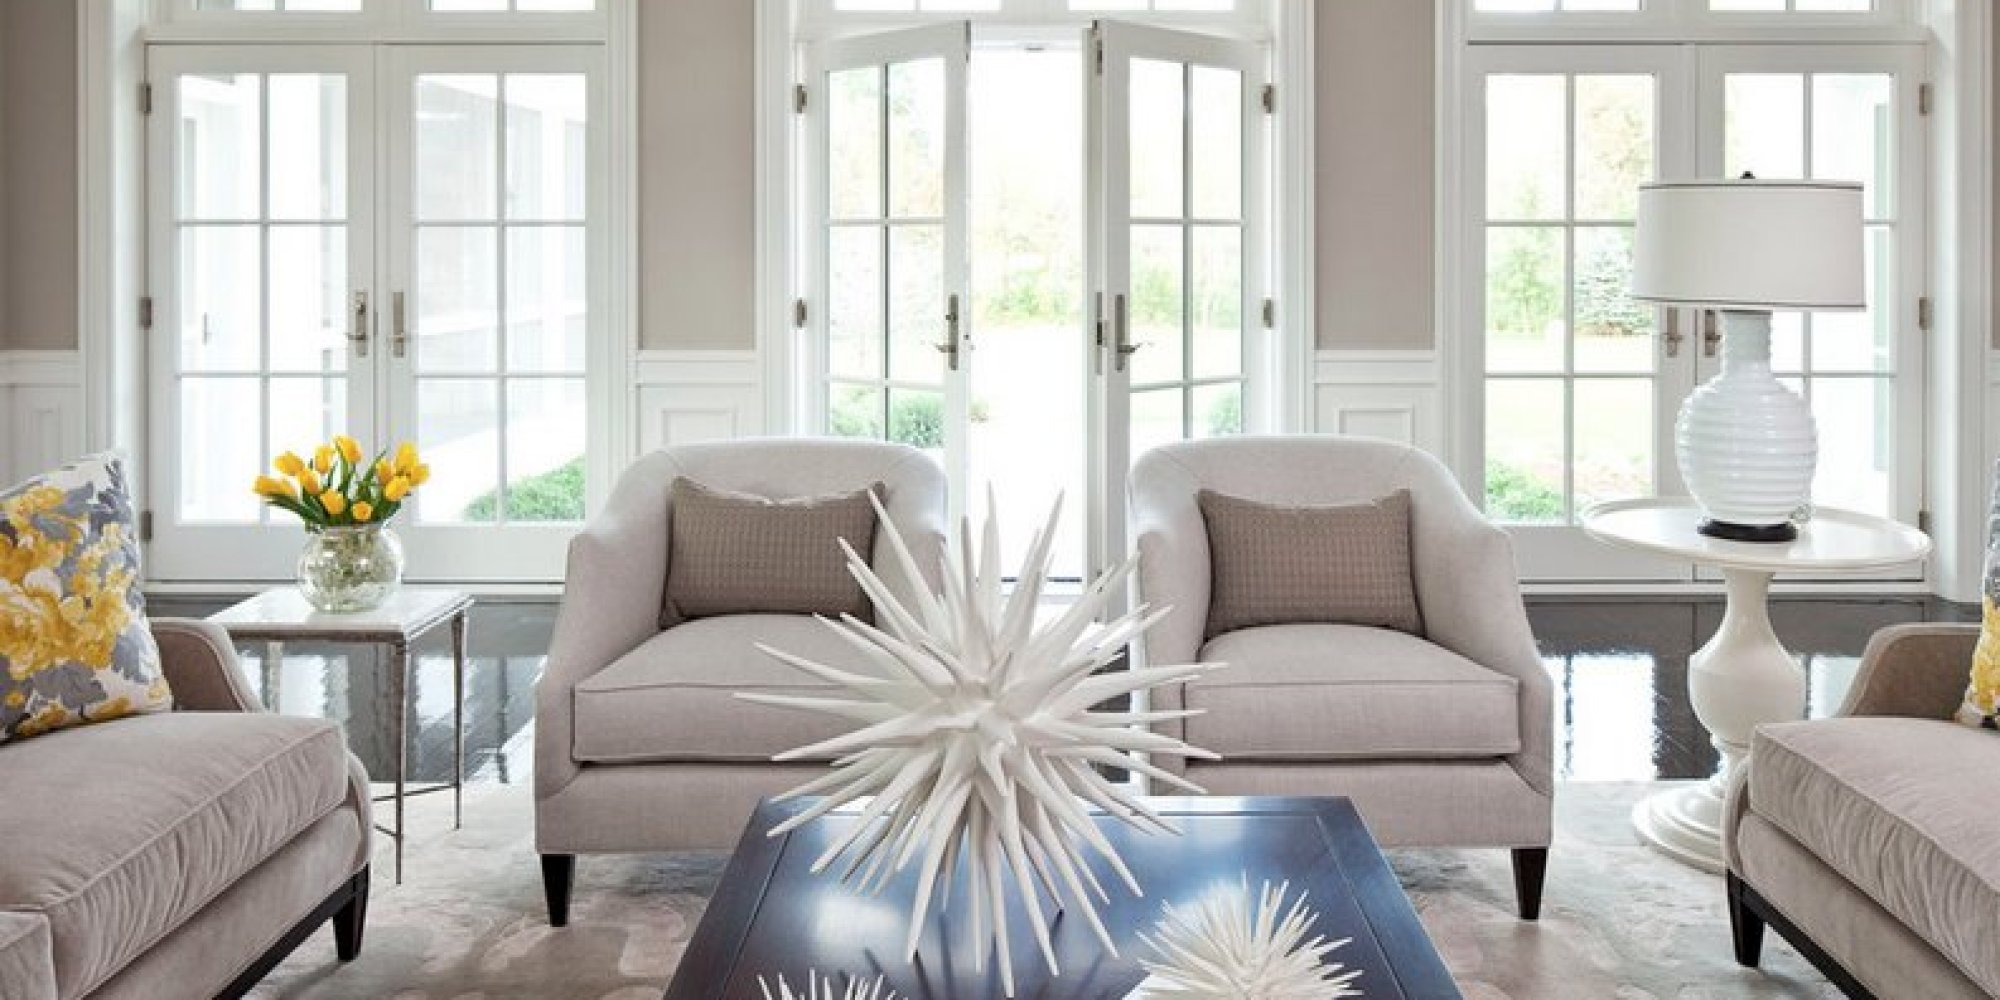 Popular Wall Colors For Living Room The 8 Best Neutral Paint Colors Thatll Work In Any Home No